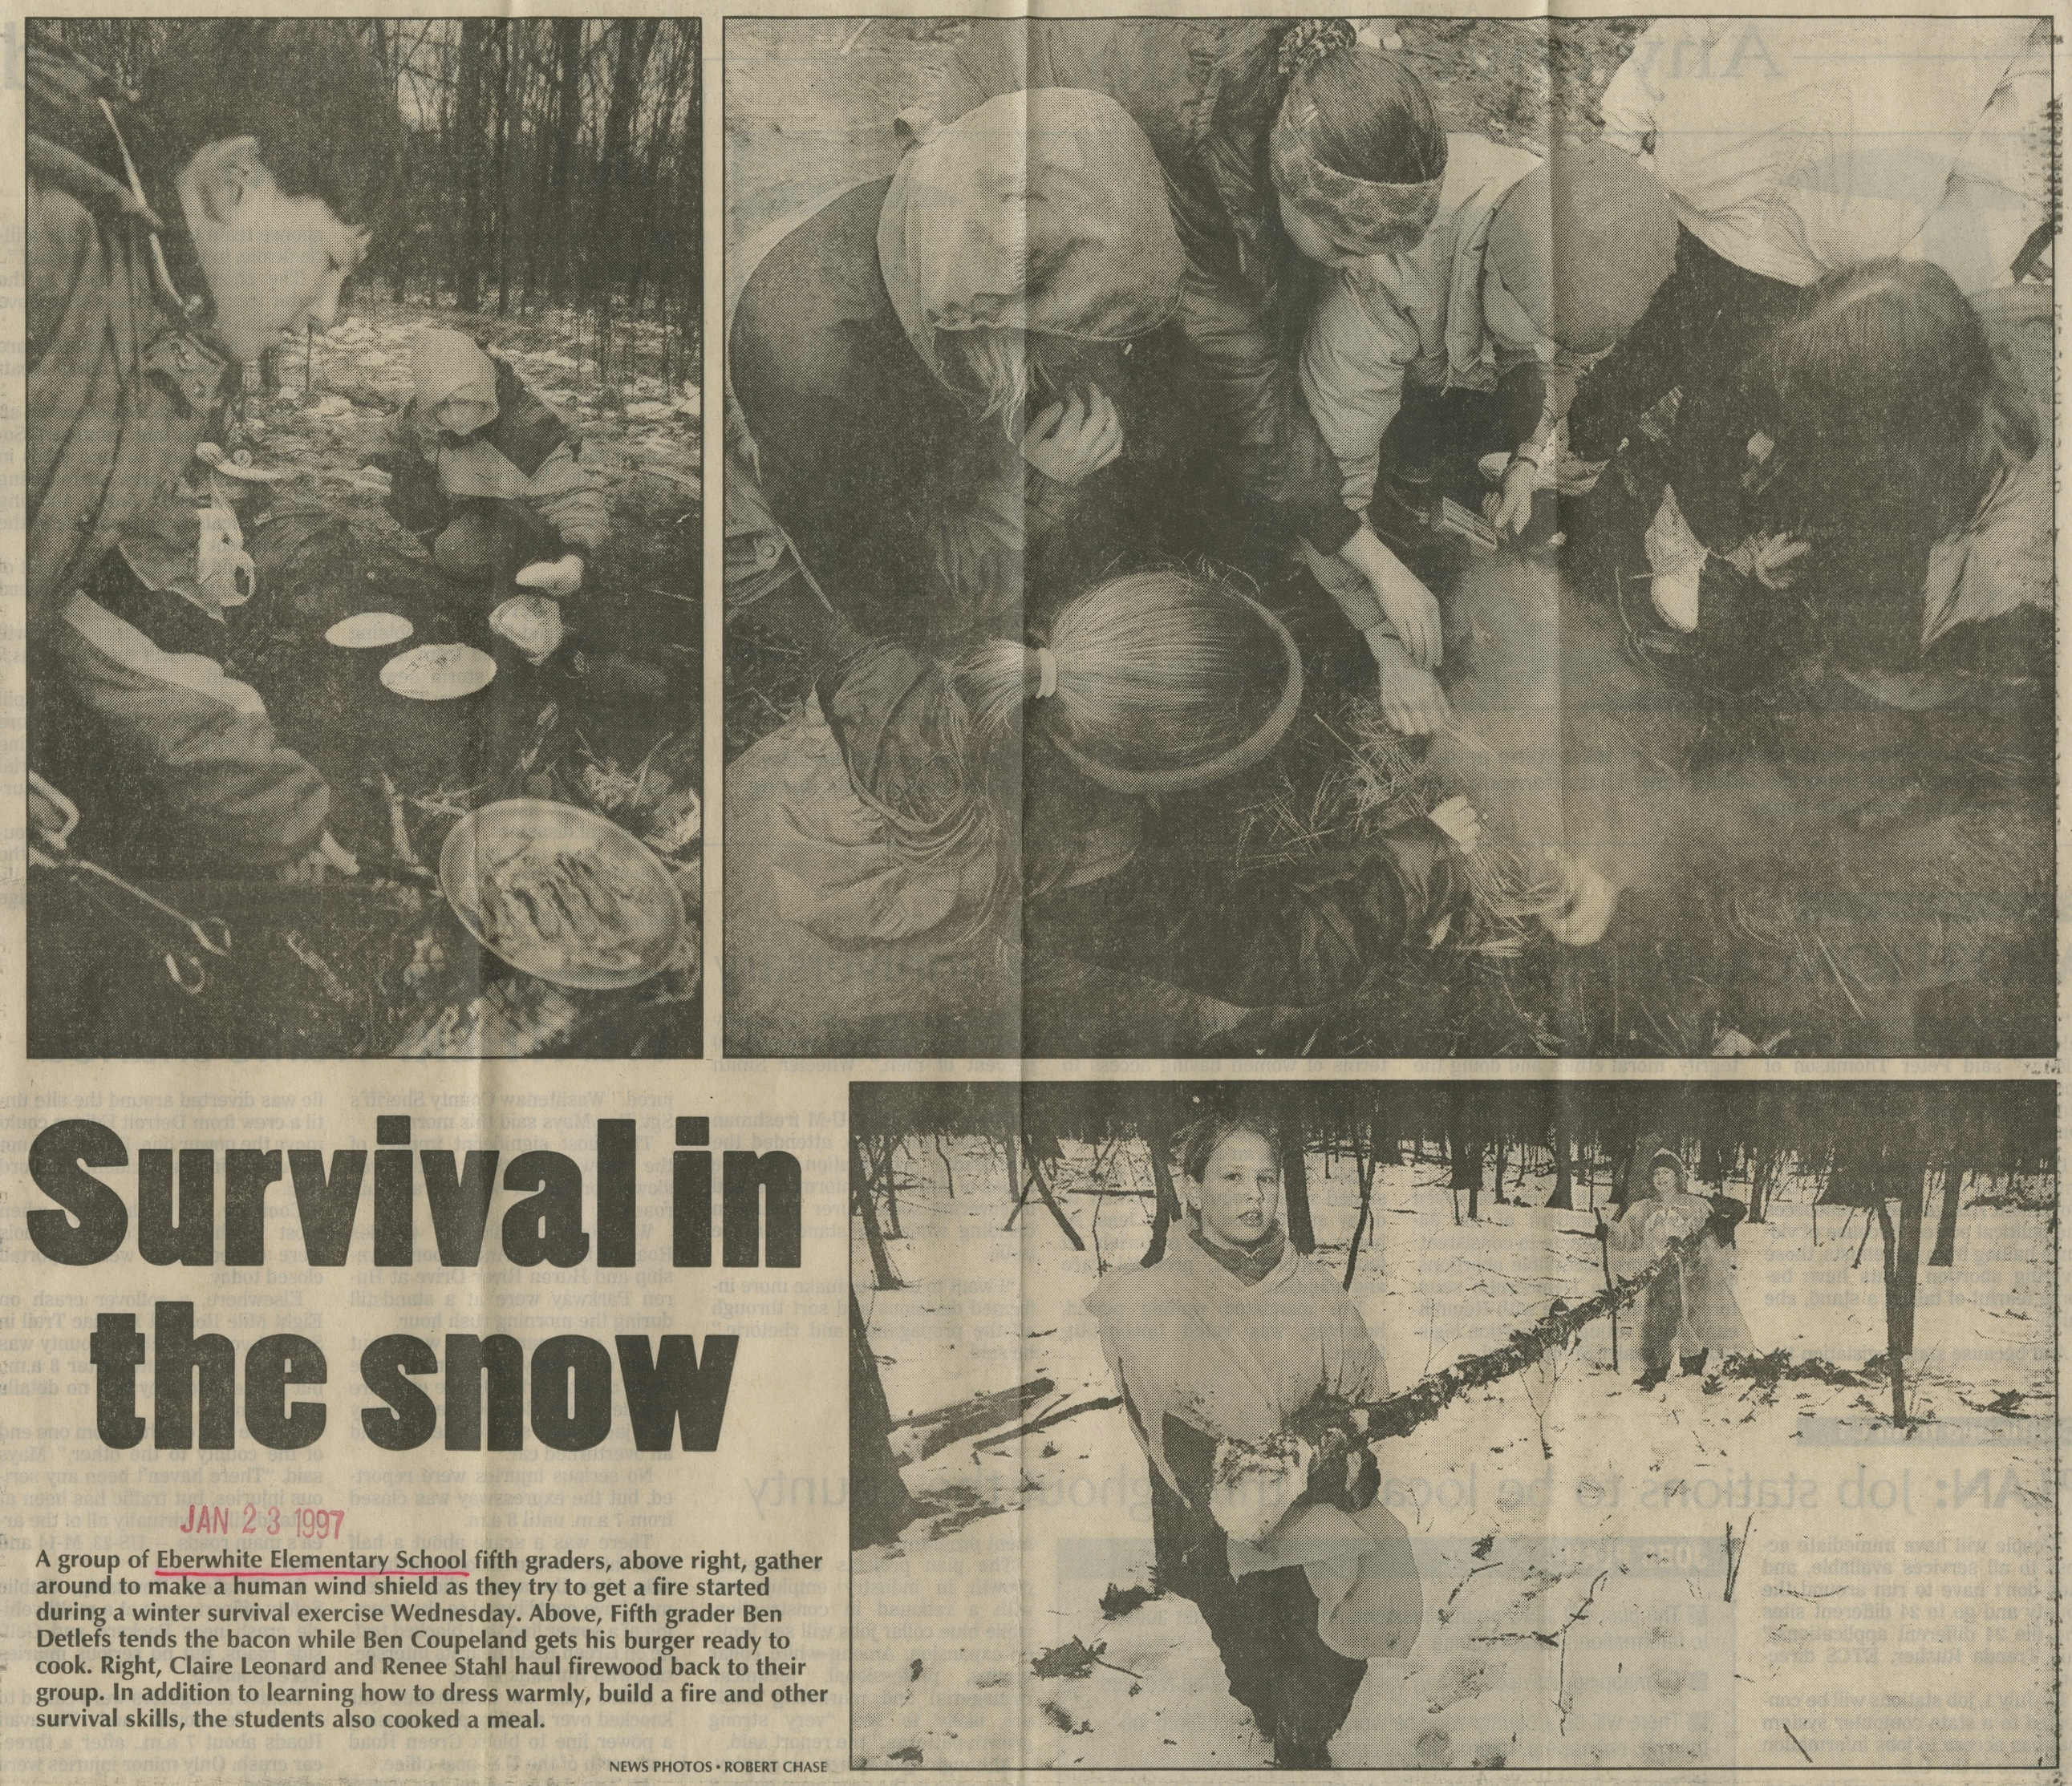 Survival In The Snow image